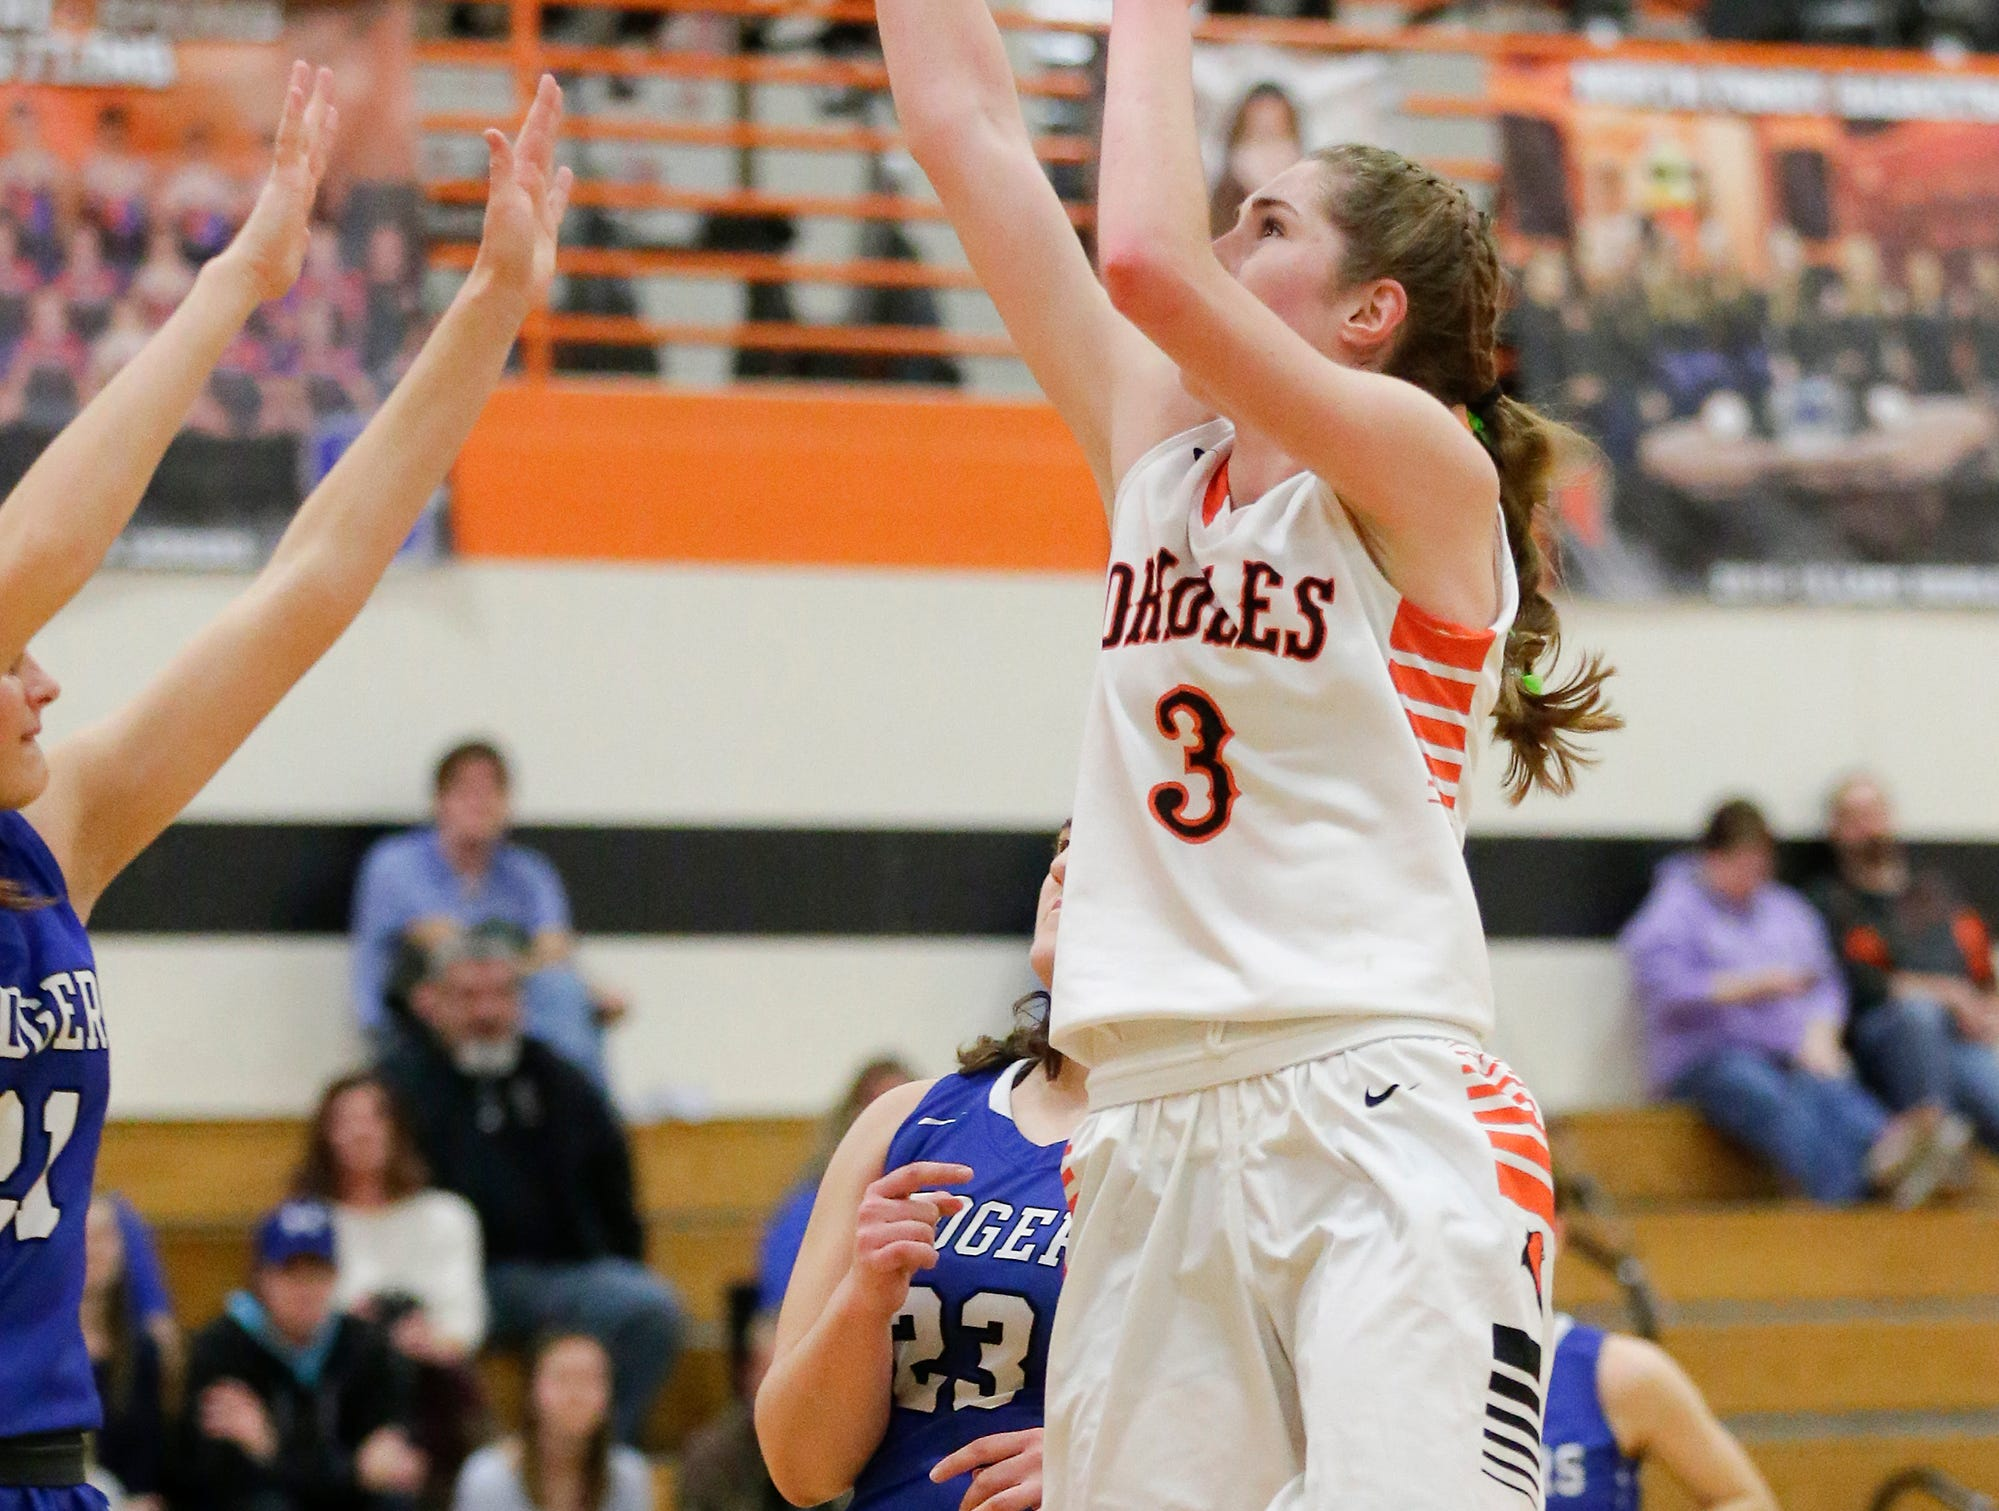 North Fond du Lac High School girls basketball's Rebecca Kingsland goes up for a shot against St. Mary's Springs Academy during their game Friday, January 4, 2019 in North Fond du lac. Doug Raflik/USA TODAY NETWORK-Wisconsin